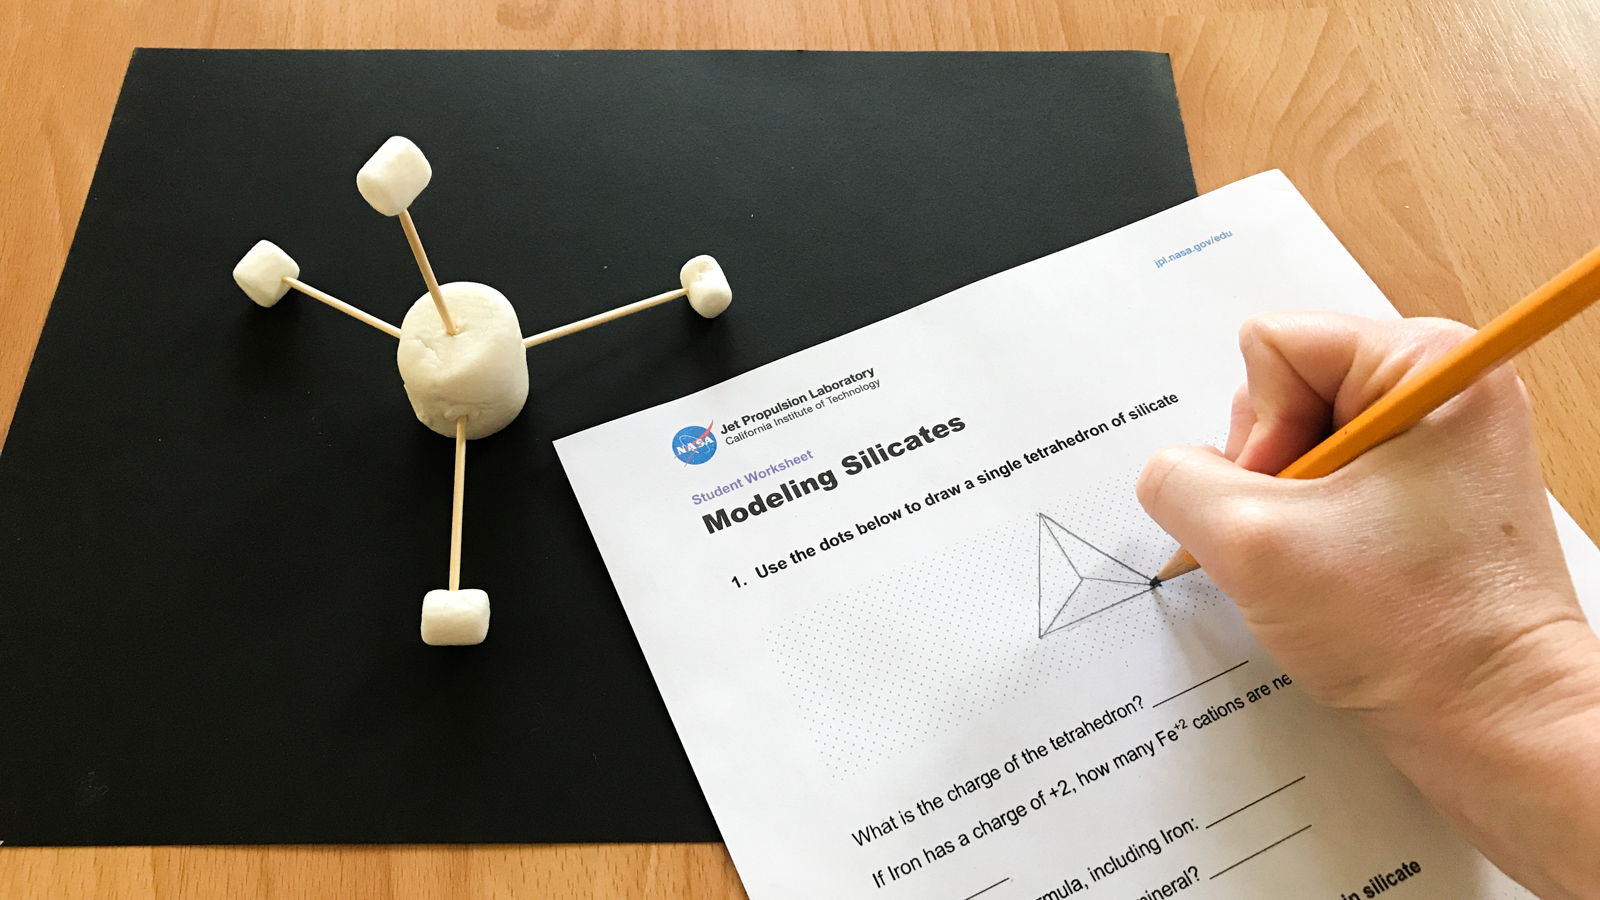 Four mini marshmallows are attached to a large marshmallow in the form of a tetrahedral next to a drawing of a tetrahedral.